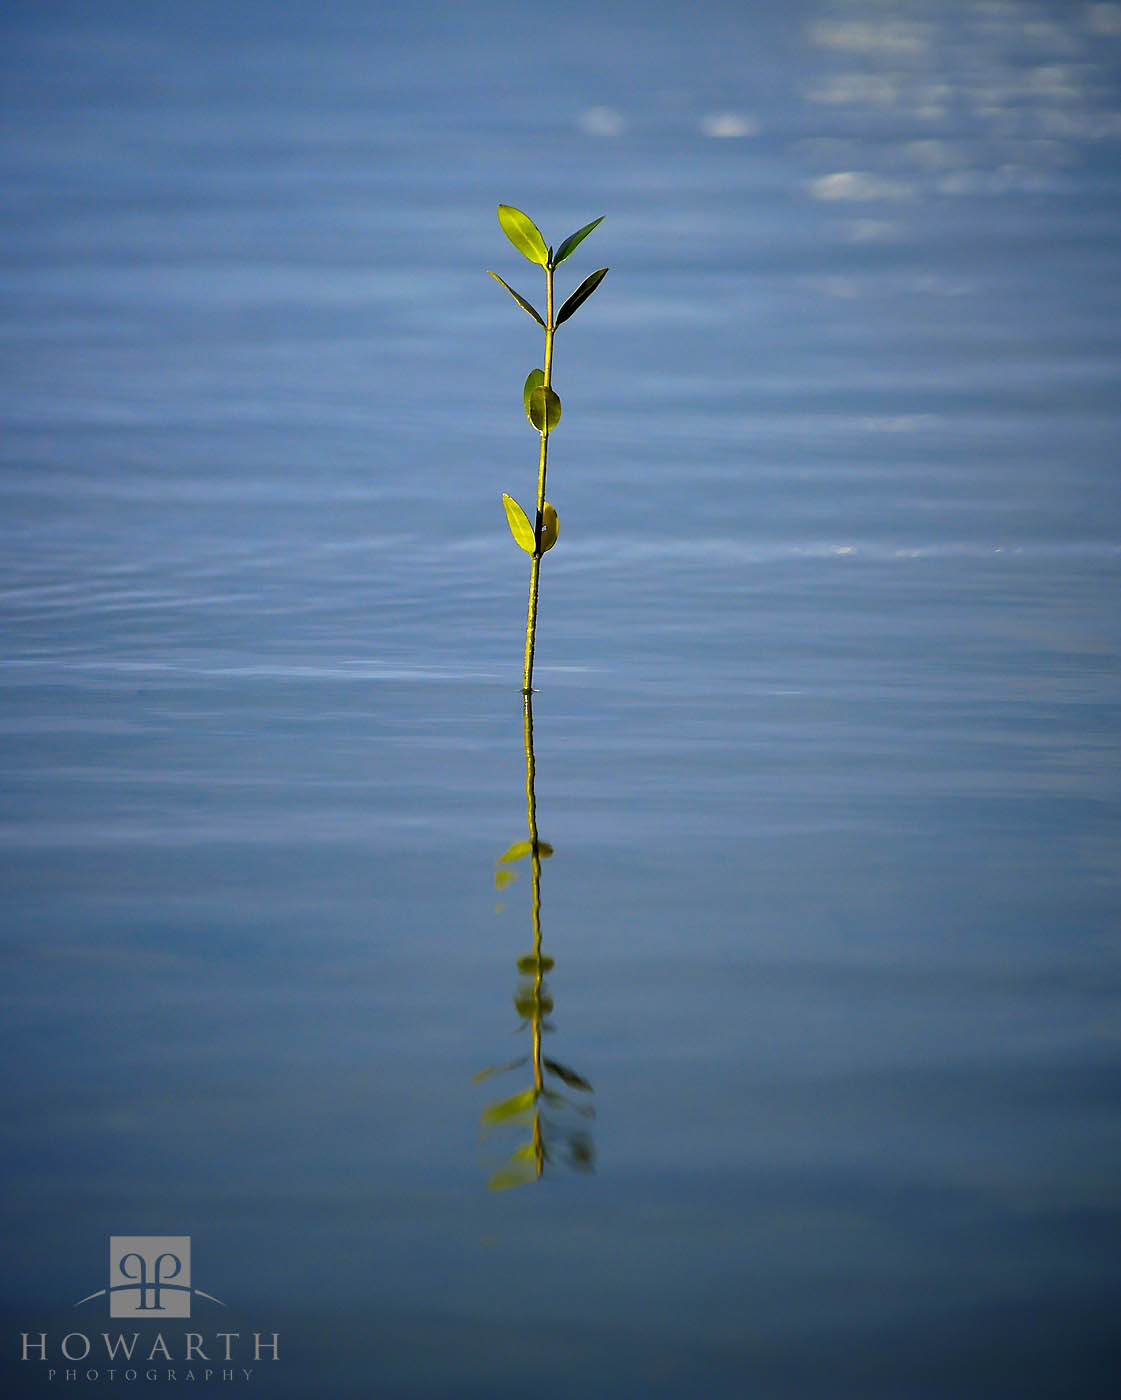 mangrove, weed, spanish, point, shallows, photo